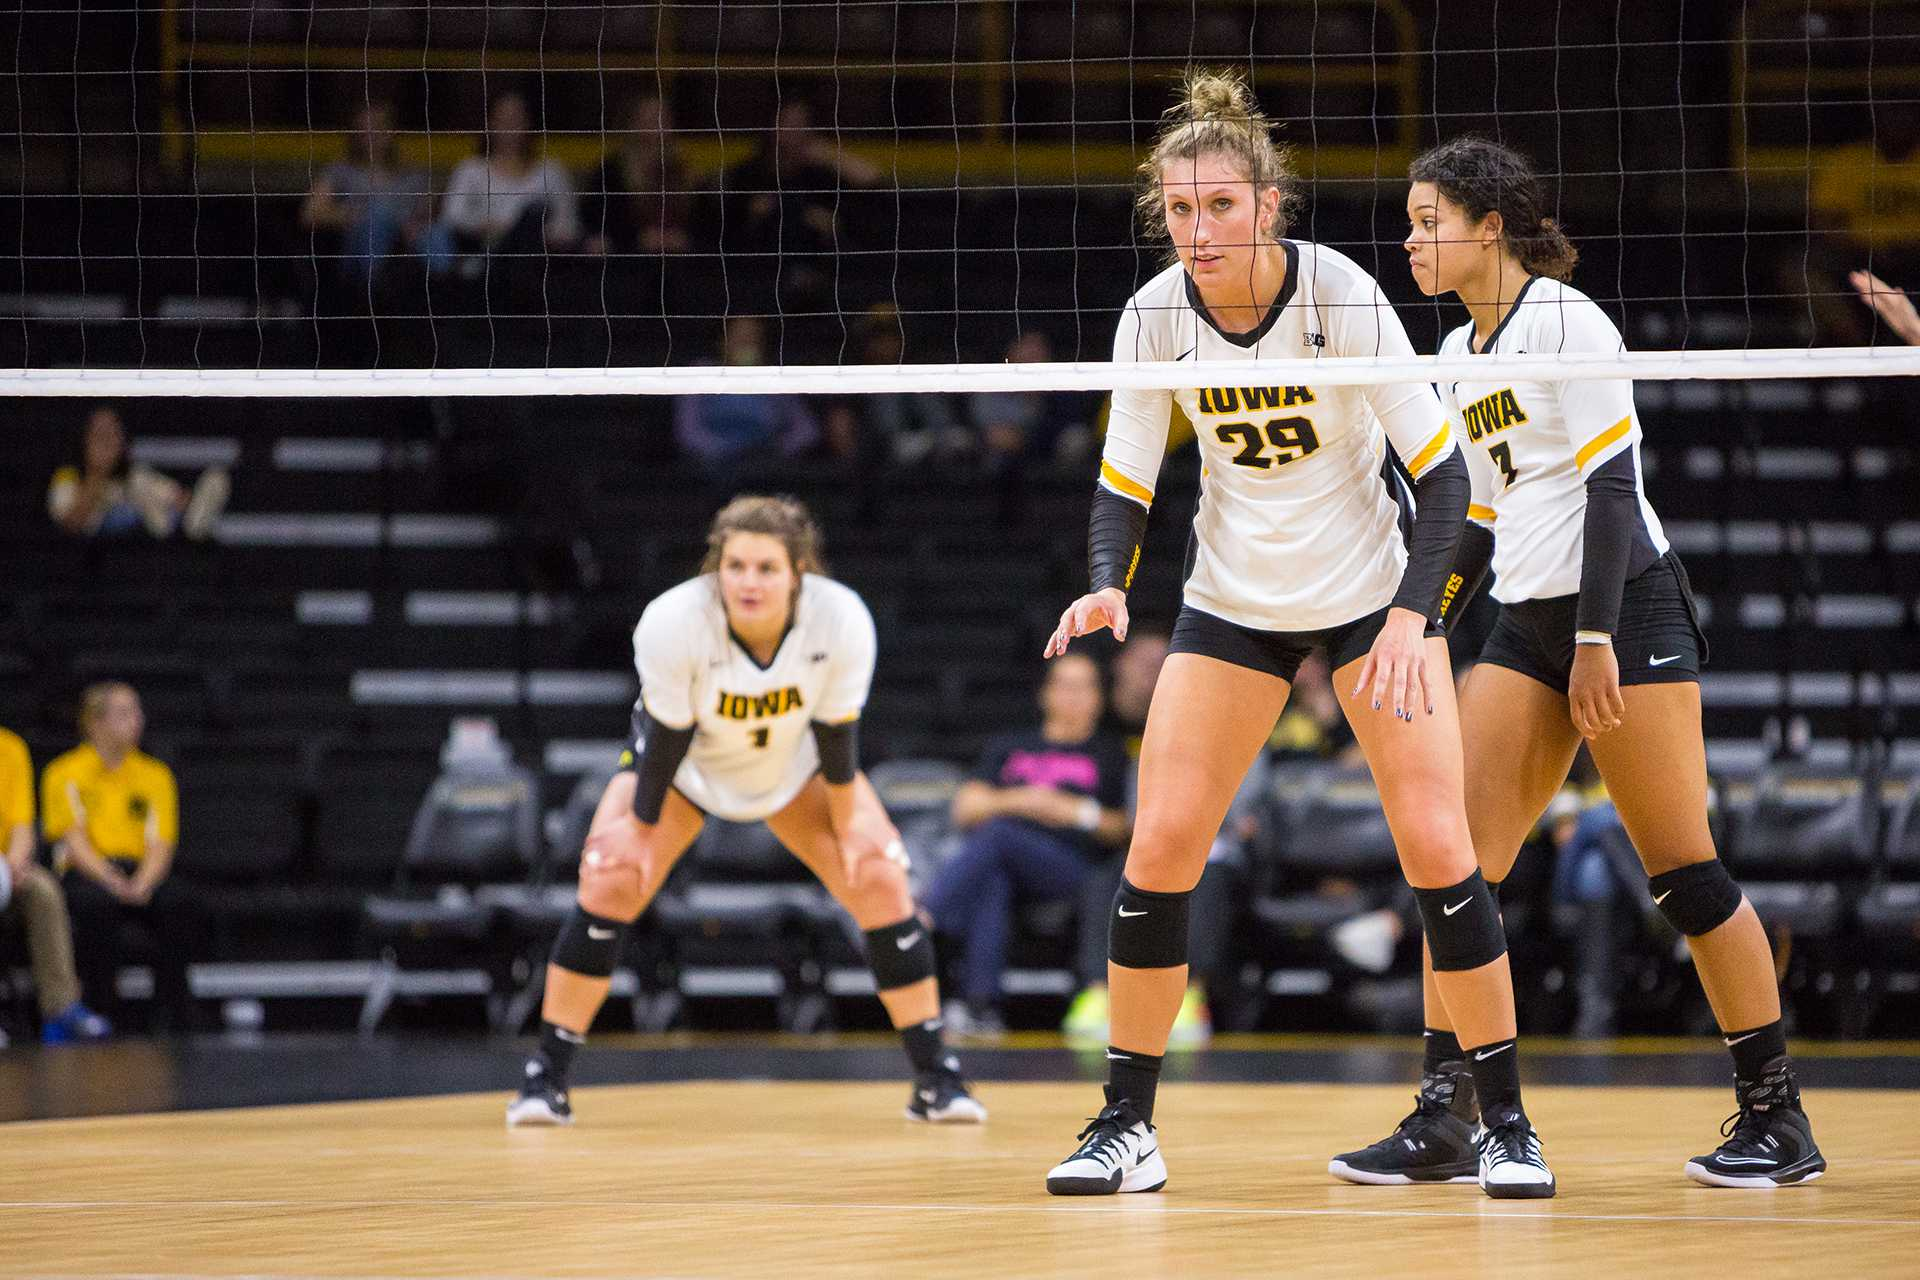 Iowa Hawkeye Volleyball player Jess Janota during a match against the University of Illinois Fighting Illini on Friday, Oct. 19, 2017. The Illini defeated the Hawkeyes three sets to two. (David Harmantas/The Daily Iowan)